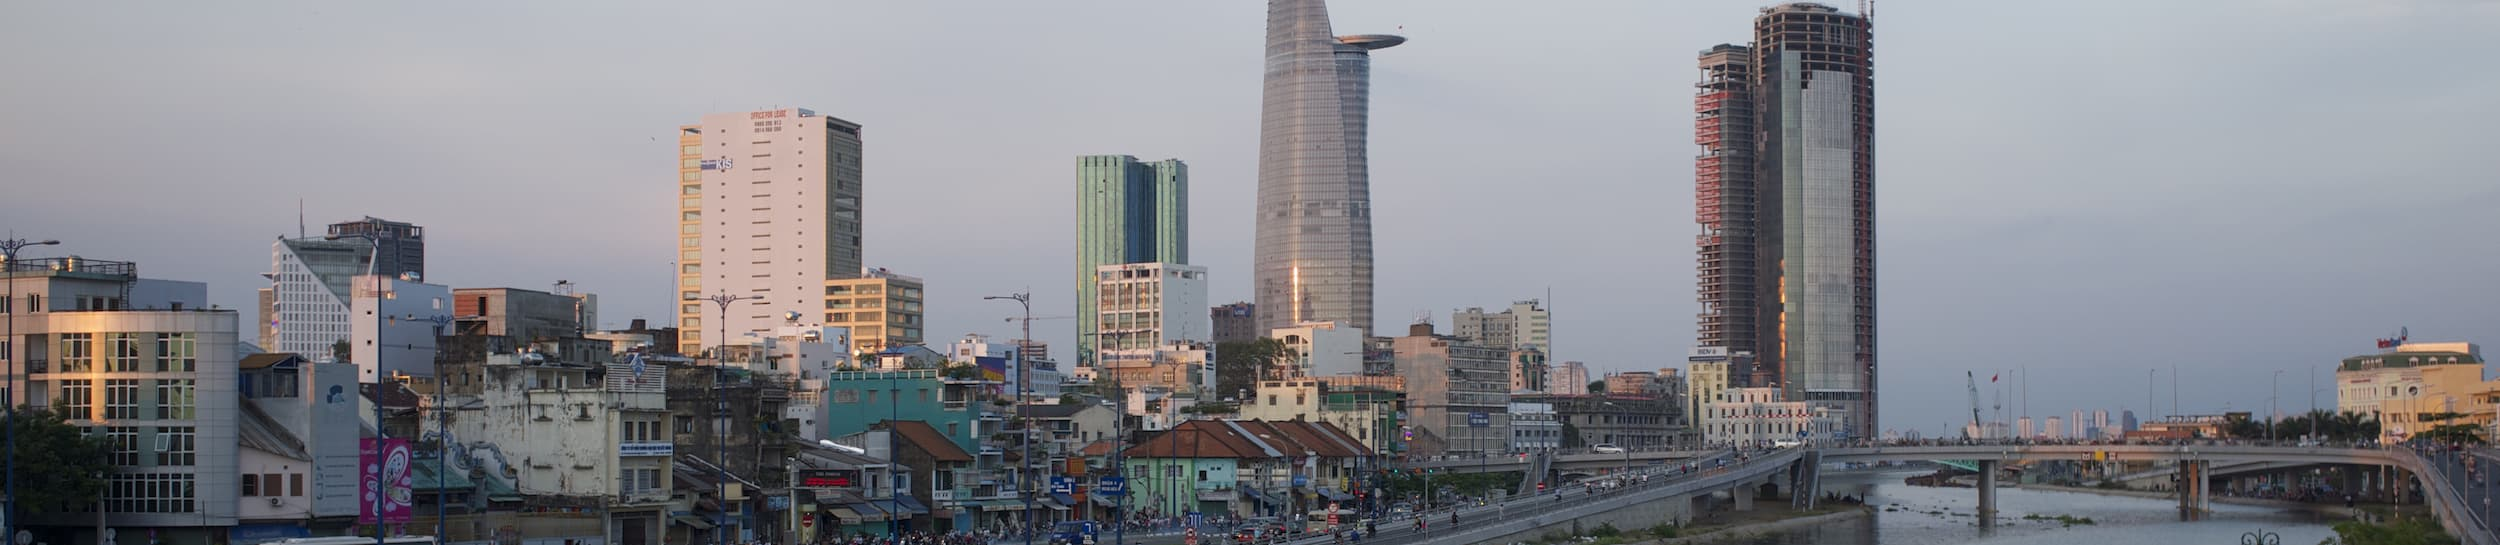 Skyline of Ho Chi Minh City